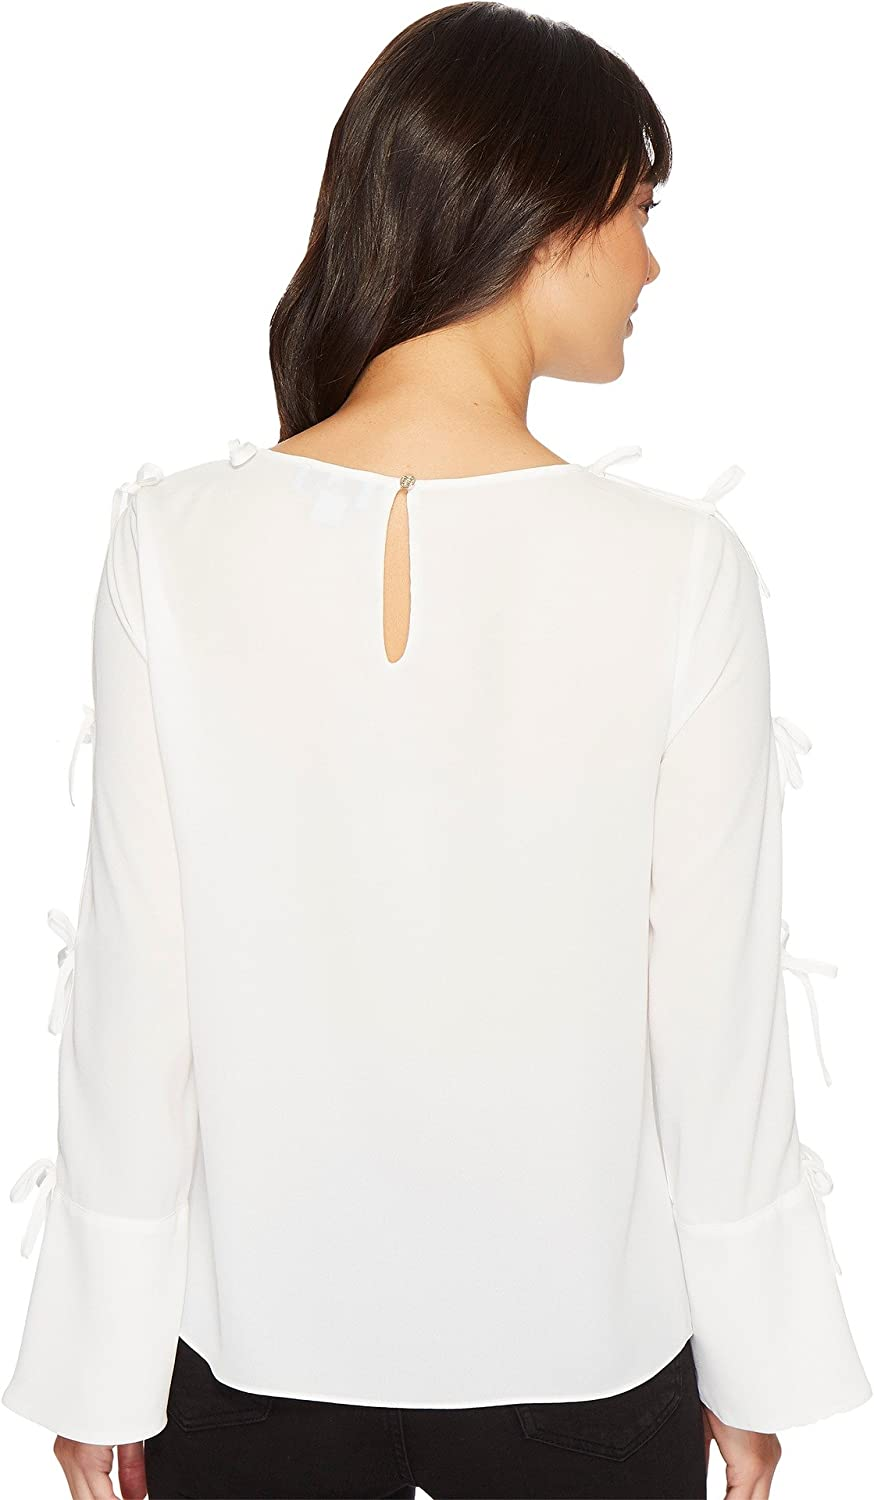 3bdcac1bef748f CeCe Womens Long Sleeve Lightweight Crepe Blouse w/Bow Detail at Amazon  Women's Clothing store: